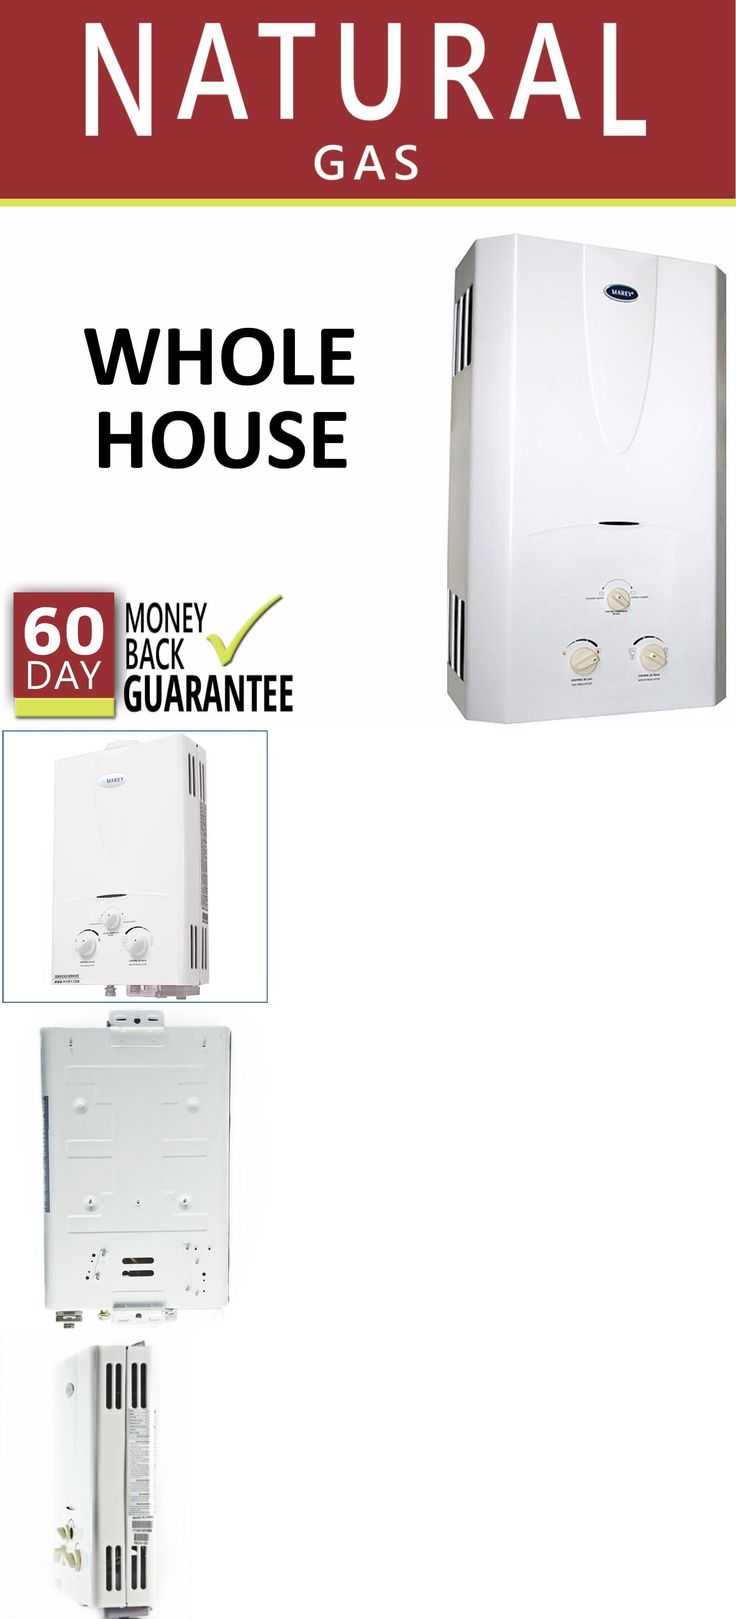 Whole House Water Heater As 10 Melhores Ideias Sobre Natural Gas Water Heater No Pinterest